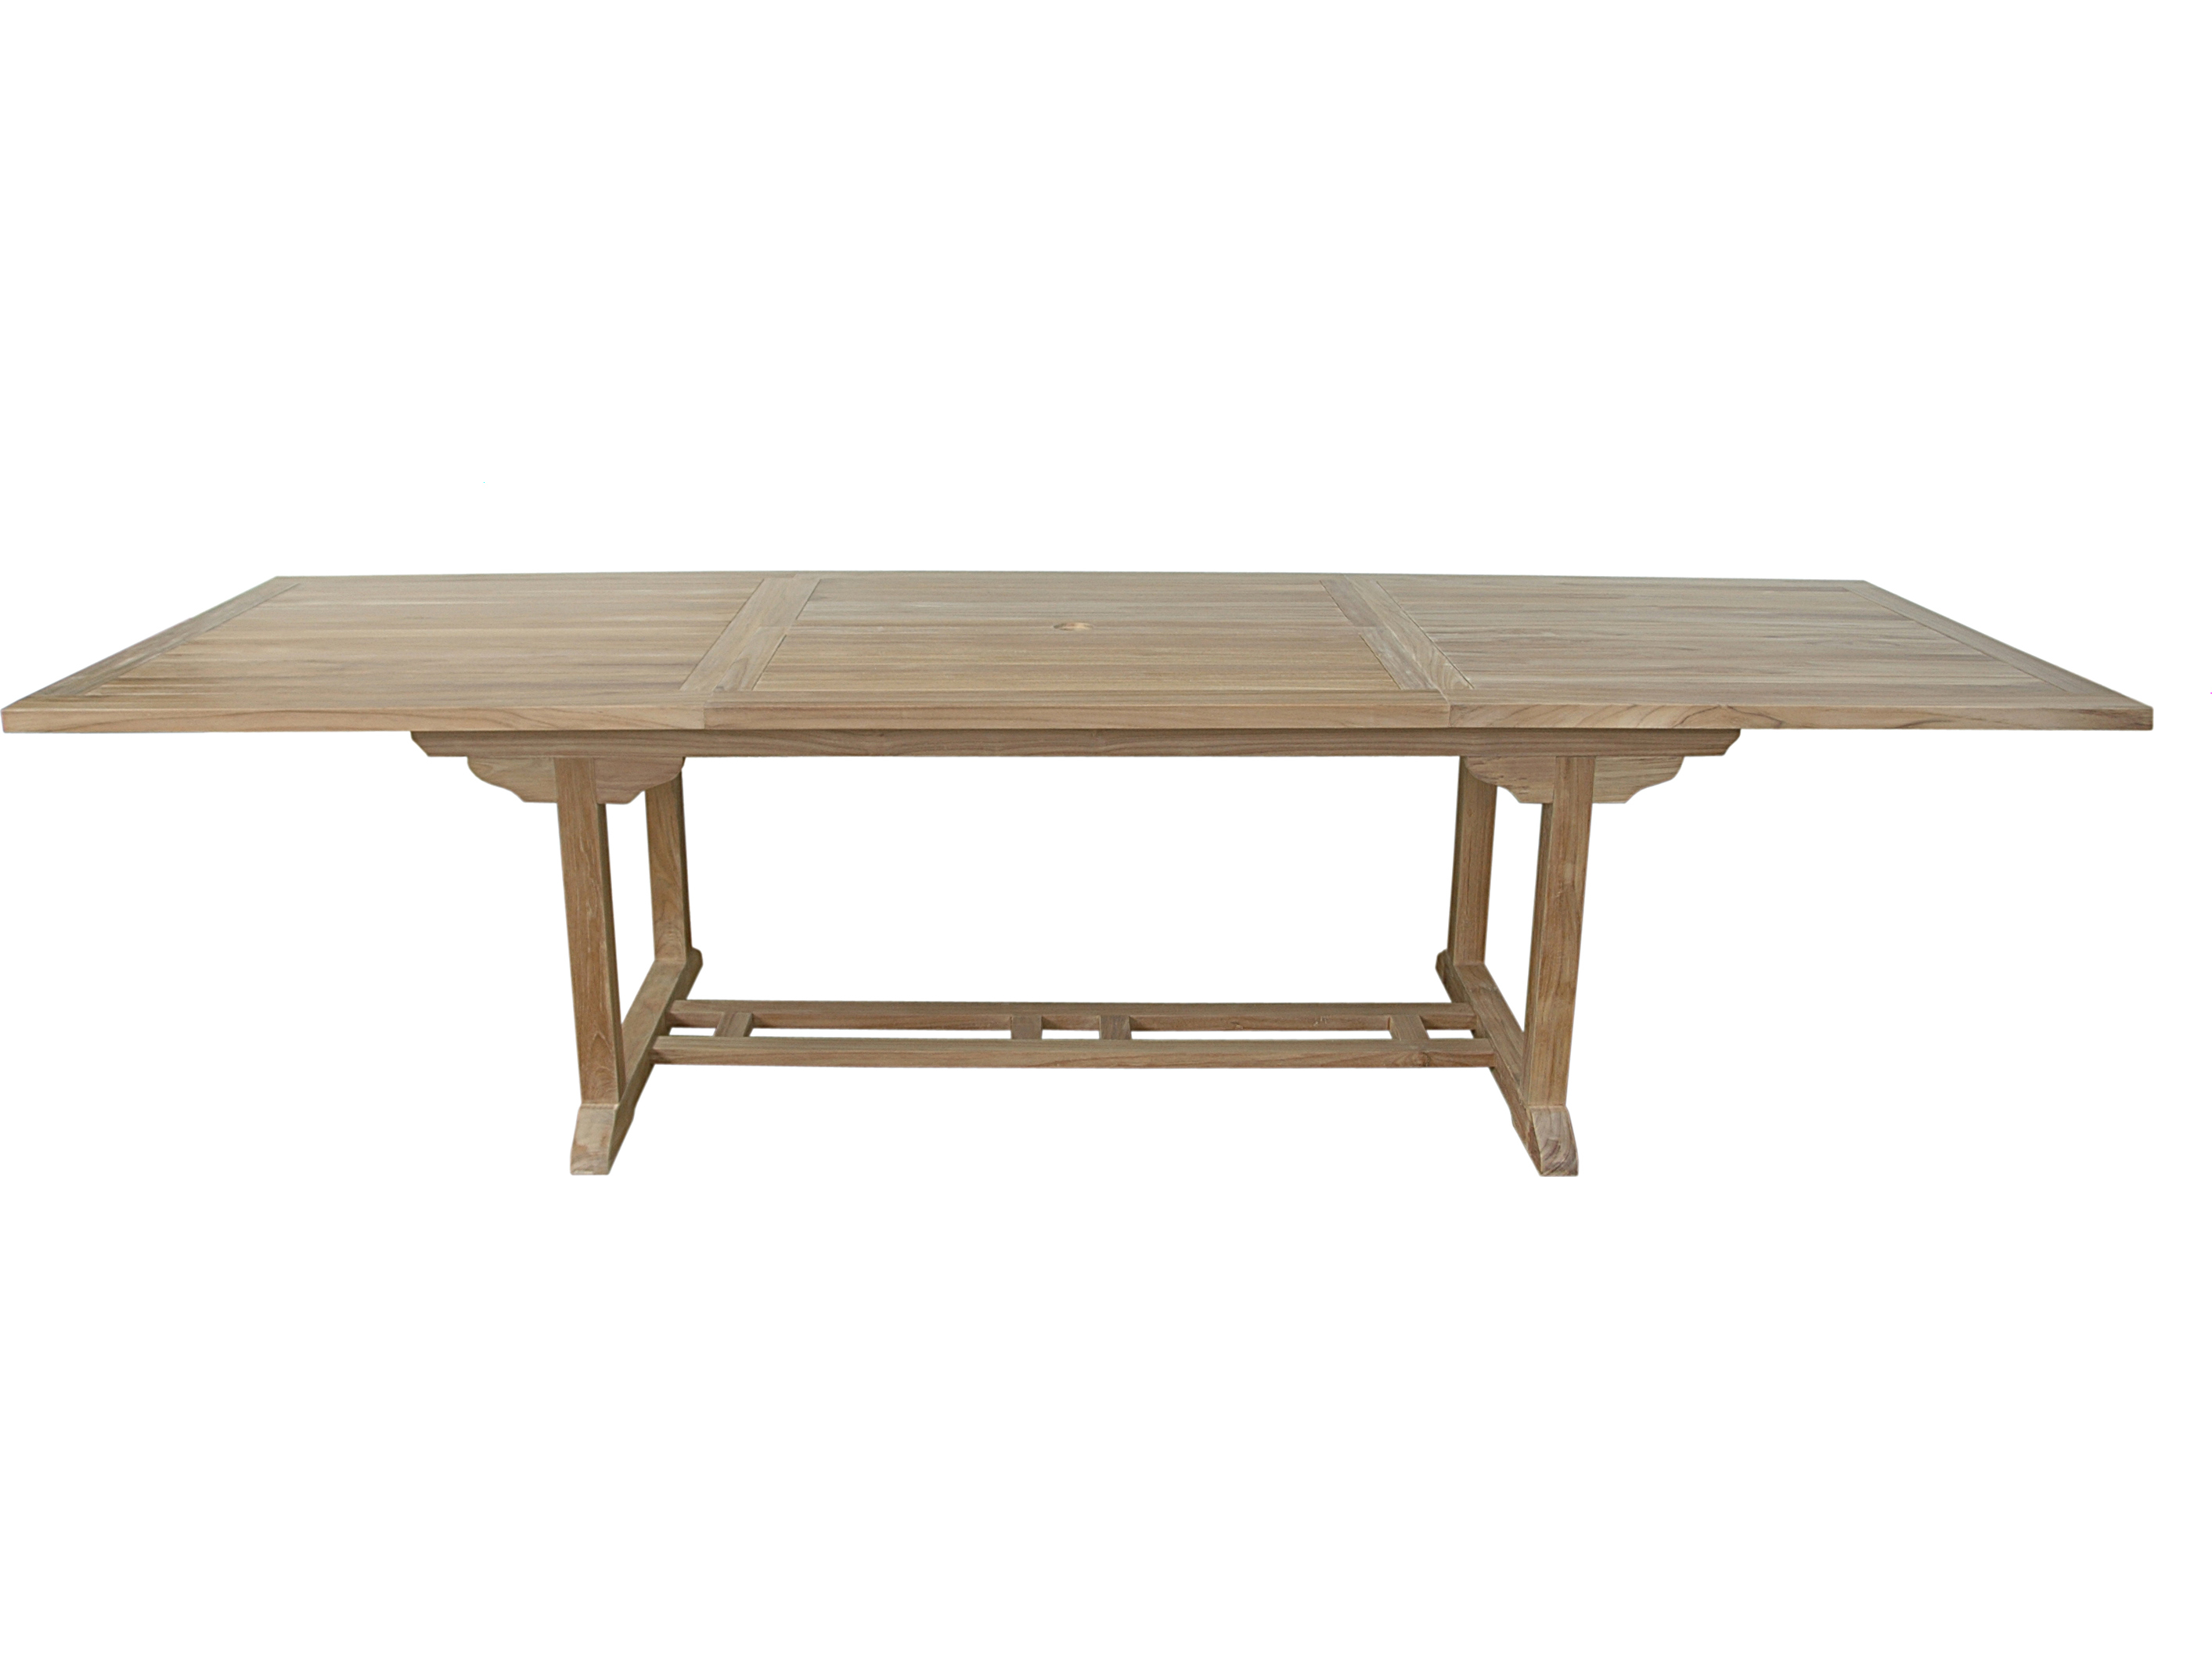 Anderson Teak Bahama 10 Foot Rectangular Extension Table